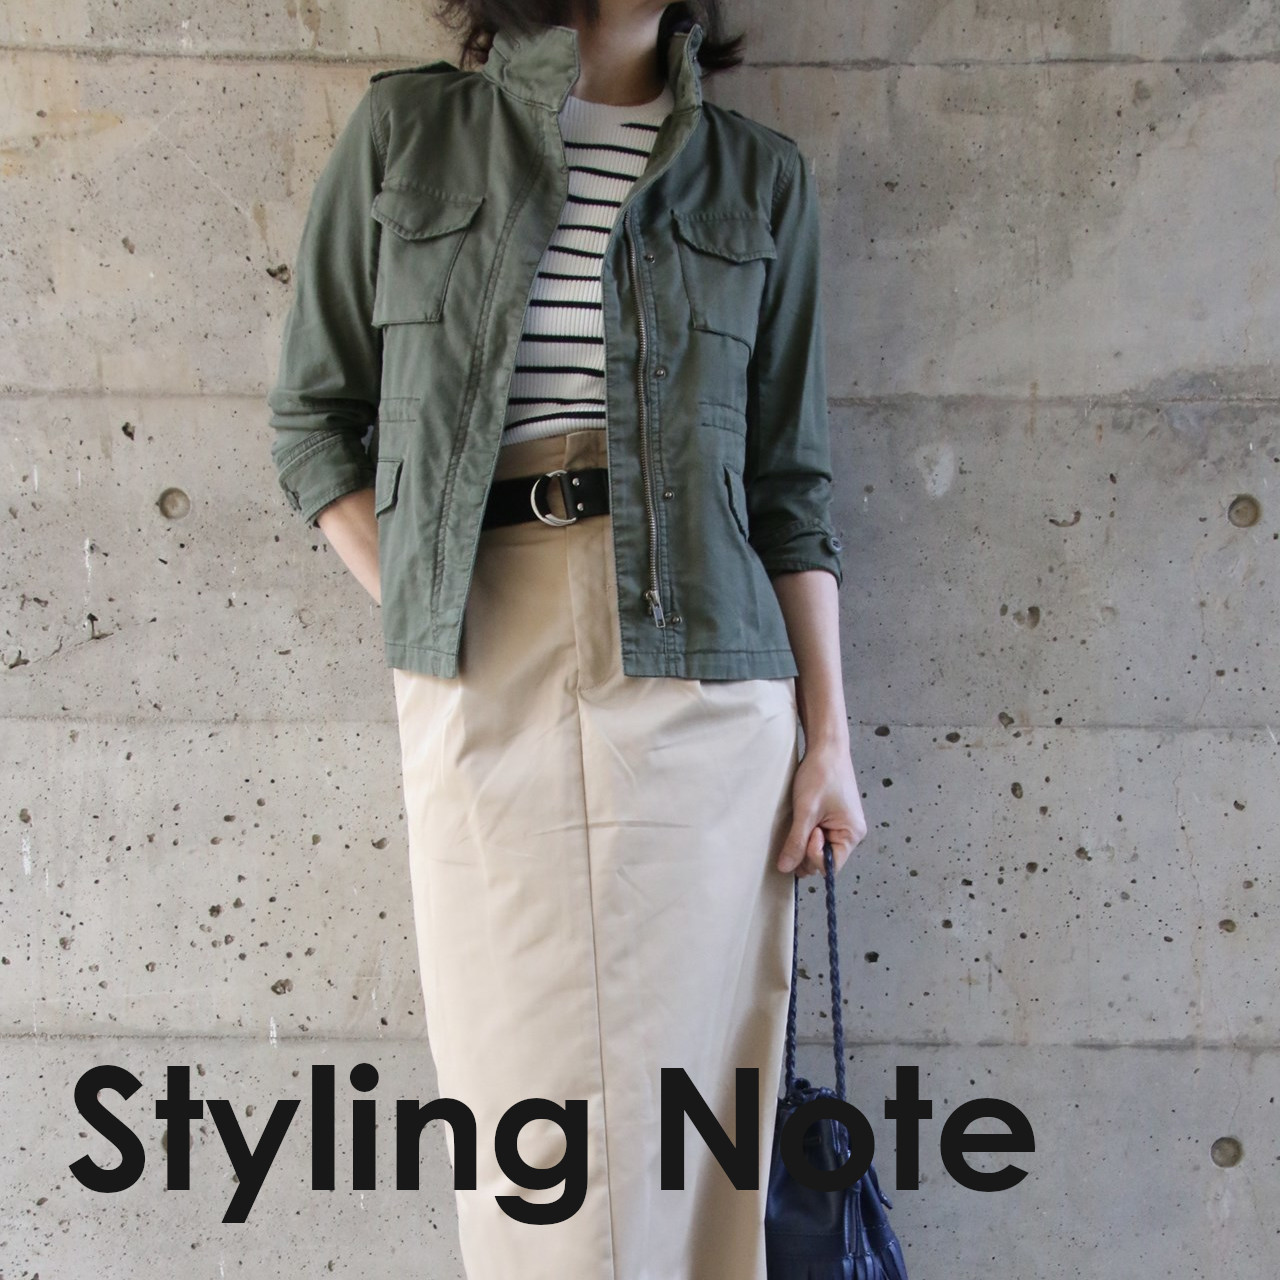 Styling Note #18